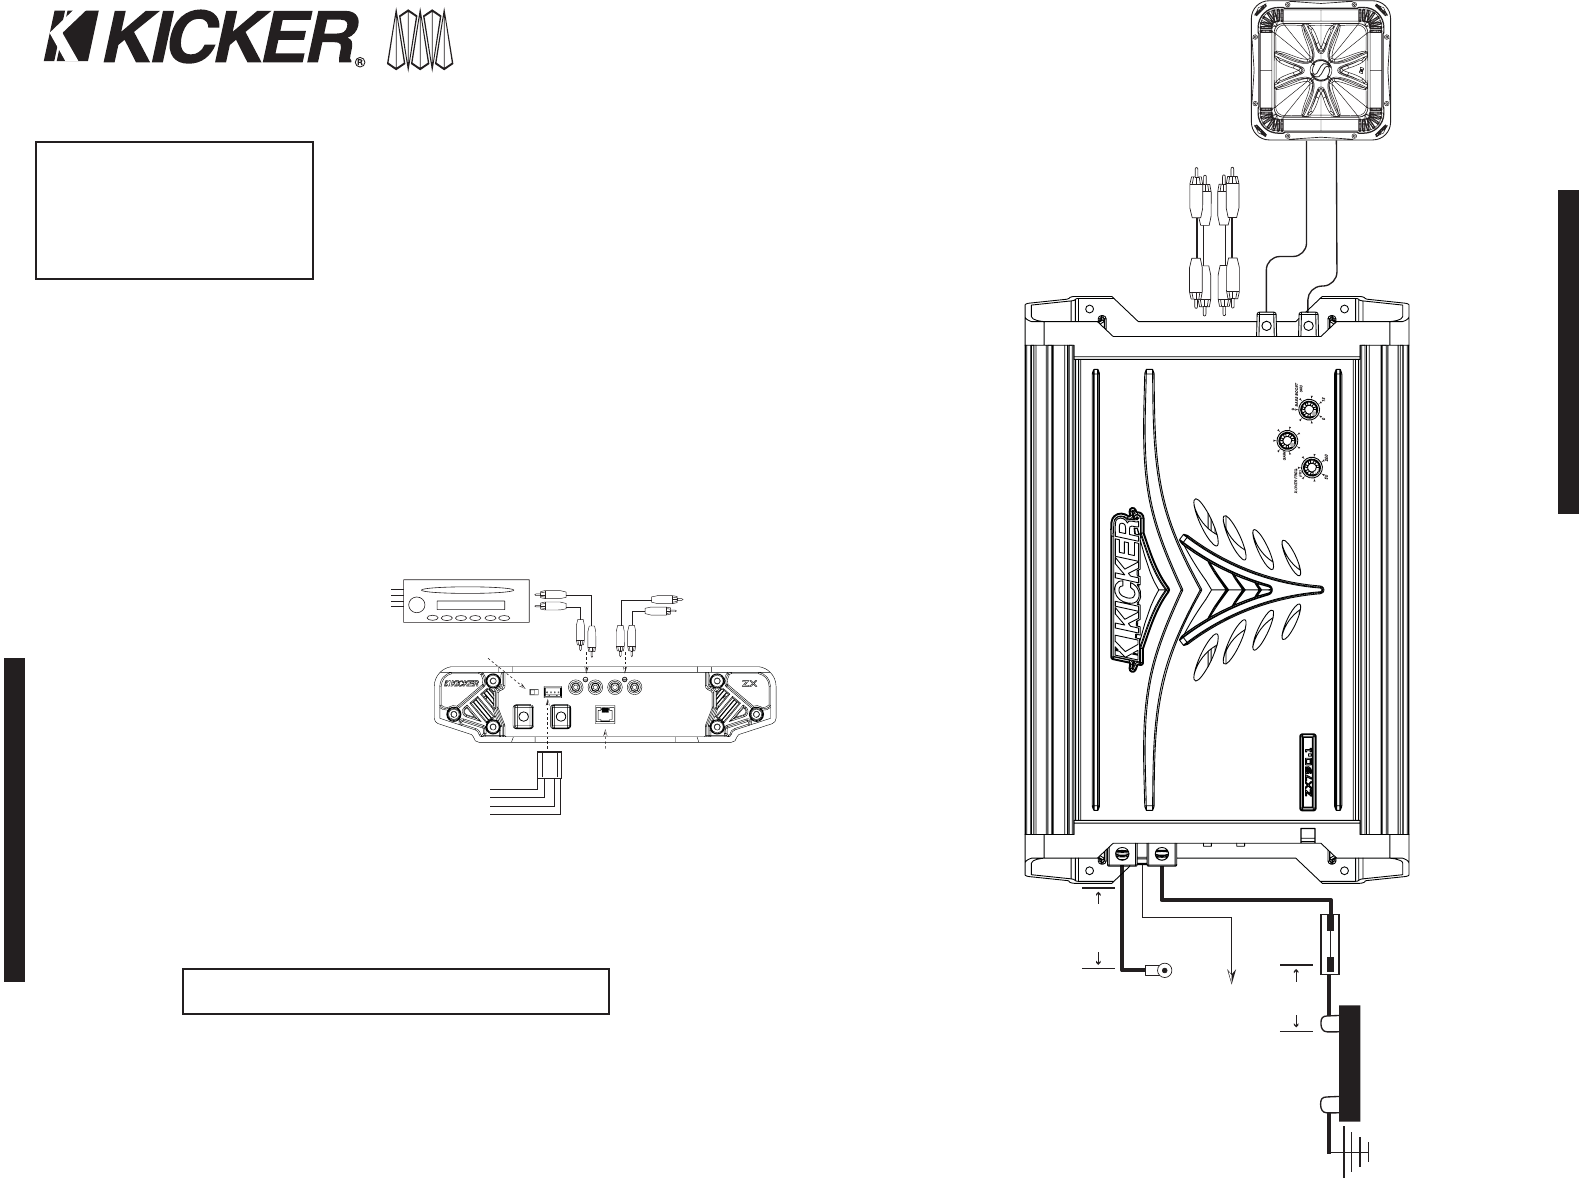 Kicker Amp Manual Various Owner Manual Guide - Kicker cxa600 1 wiring diagram